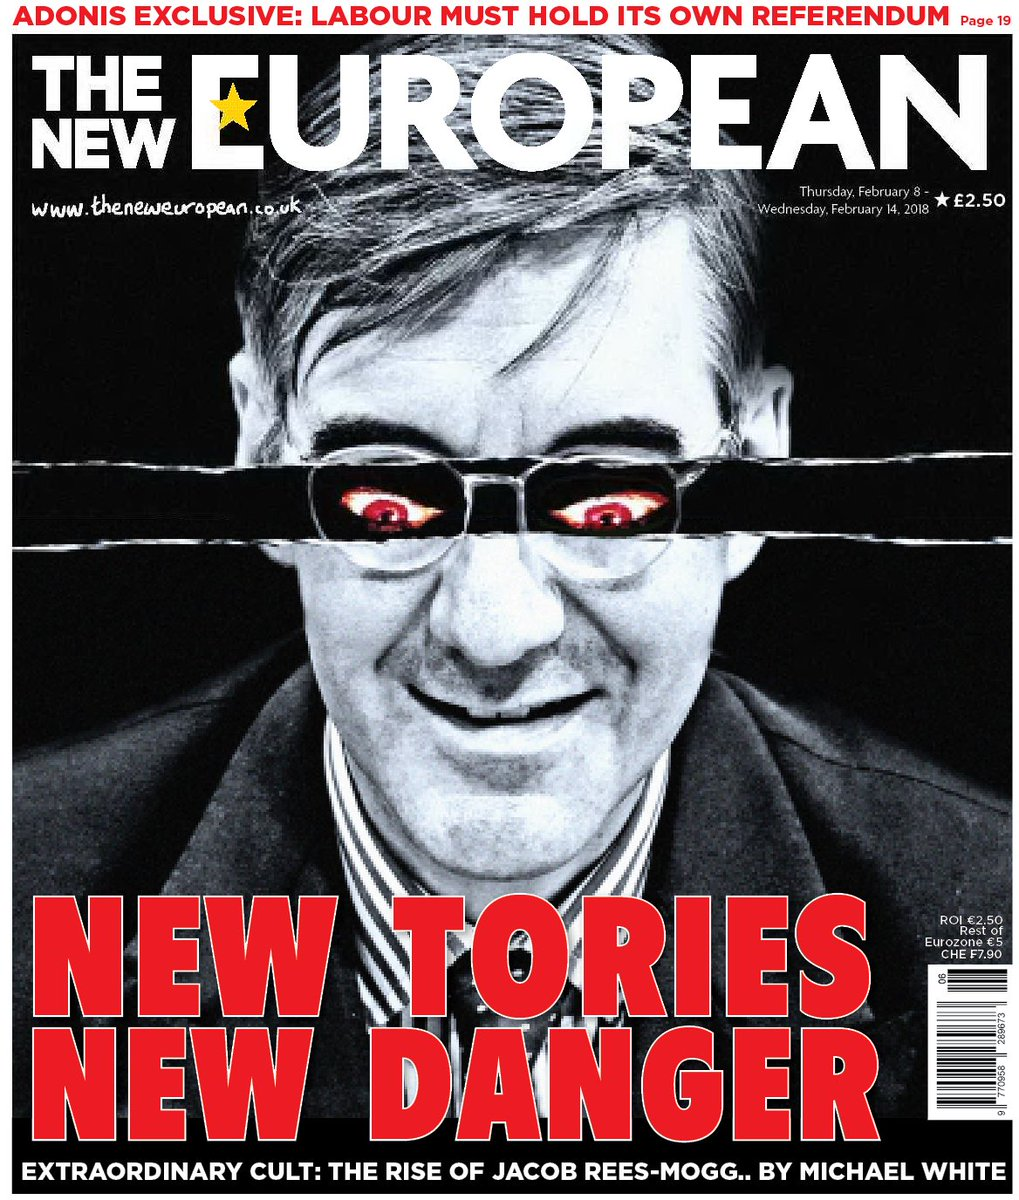 """The New European on Twitter: """"New Tories, New Danger. This week's ..."""